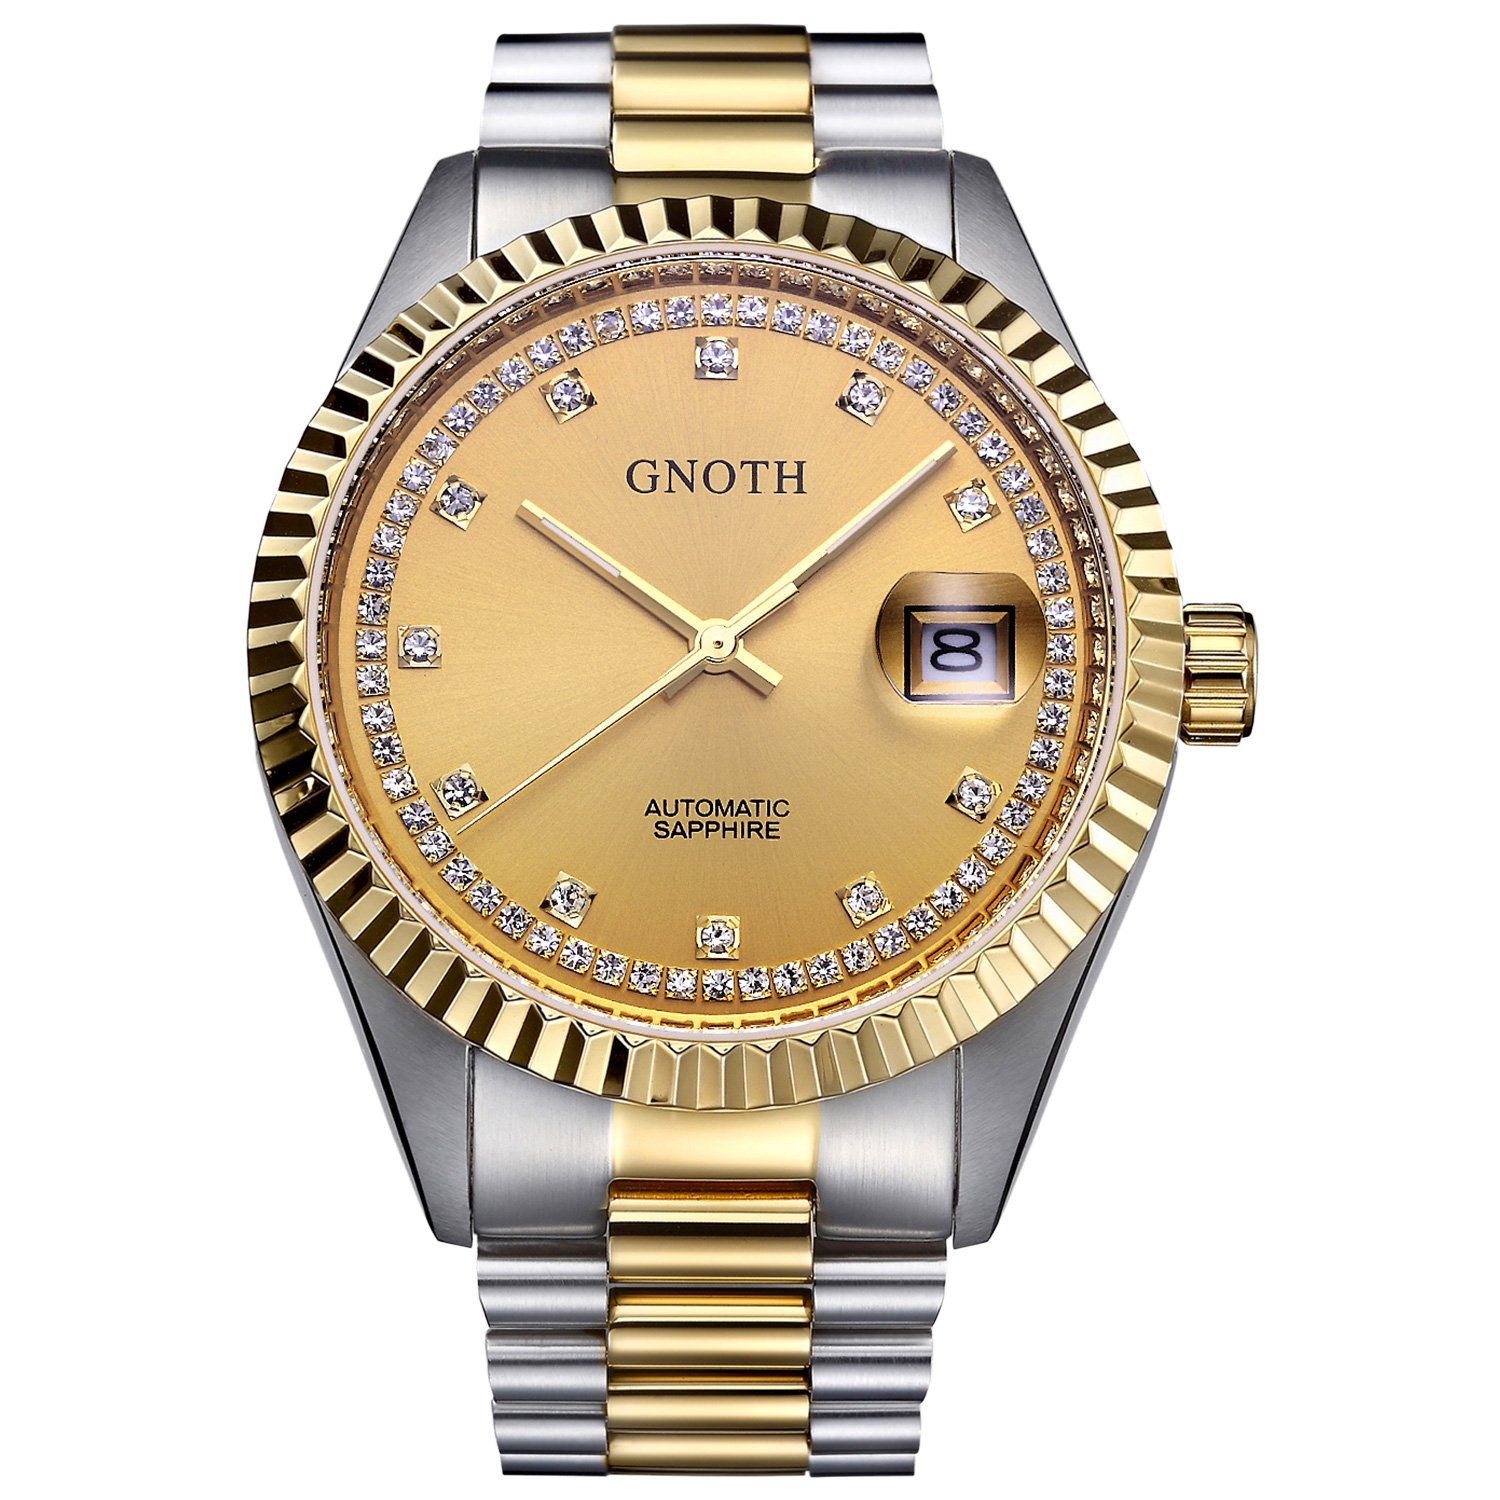 GNOTH Gold Luxury Date Japanese Business Mechanical Watch with Stainless Steel Band Wrist Watch for Men (date) by GNOTH